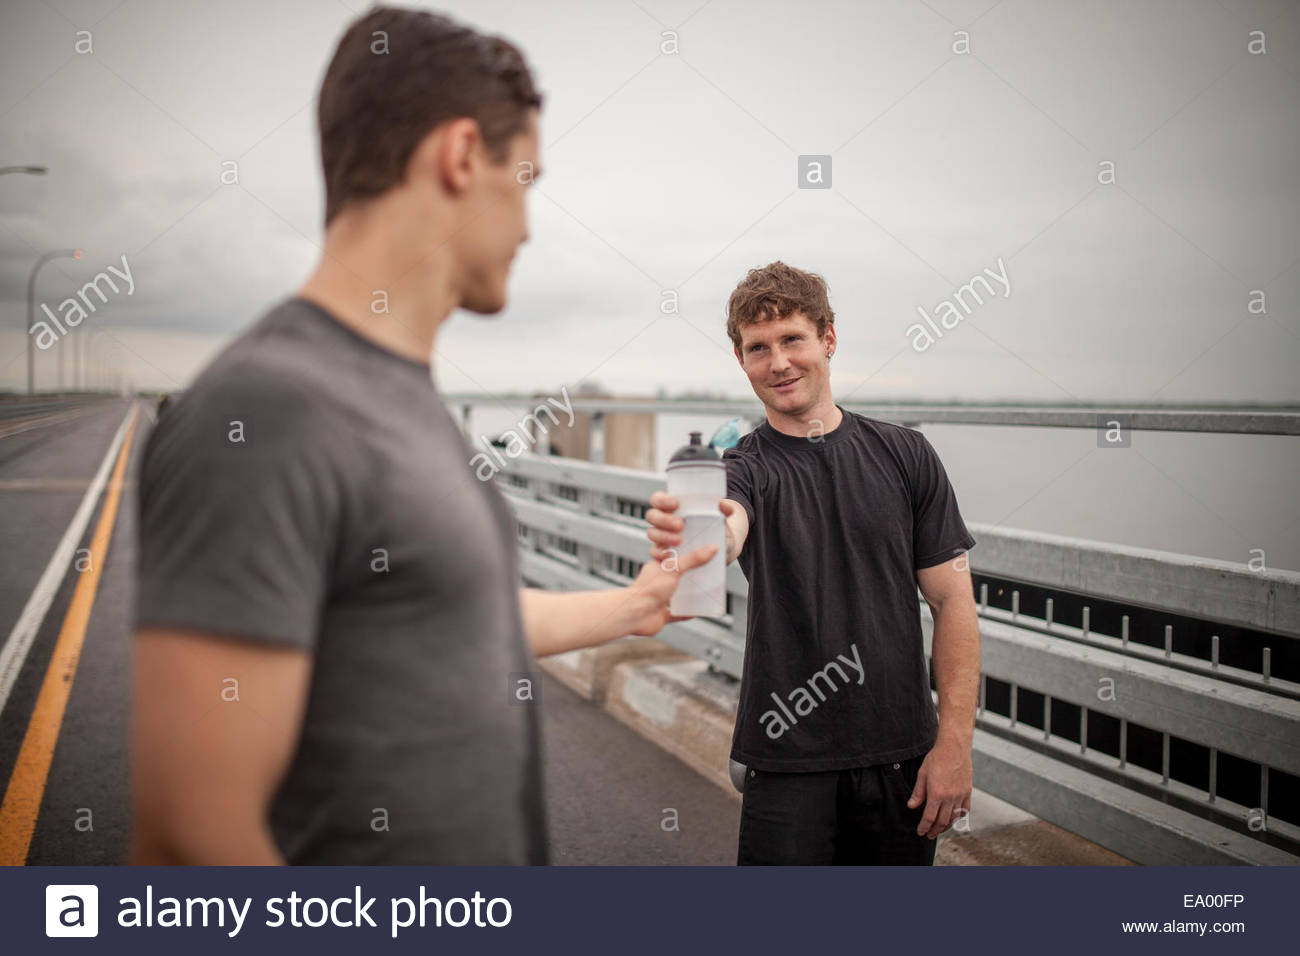 Young man handing water bottle to friend - Stock Image